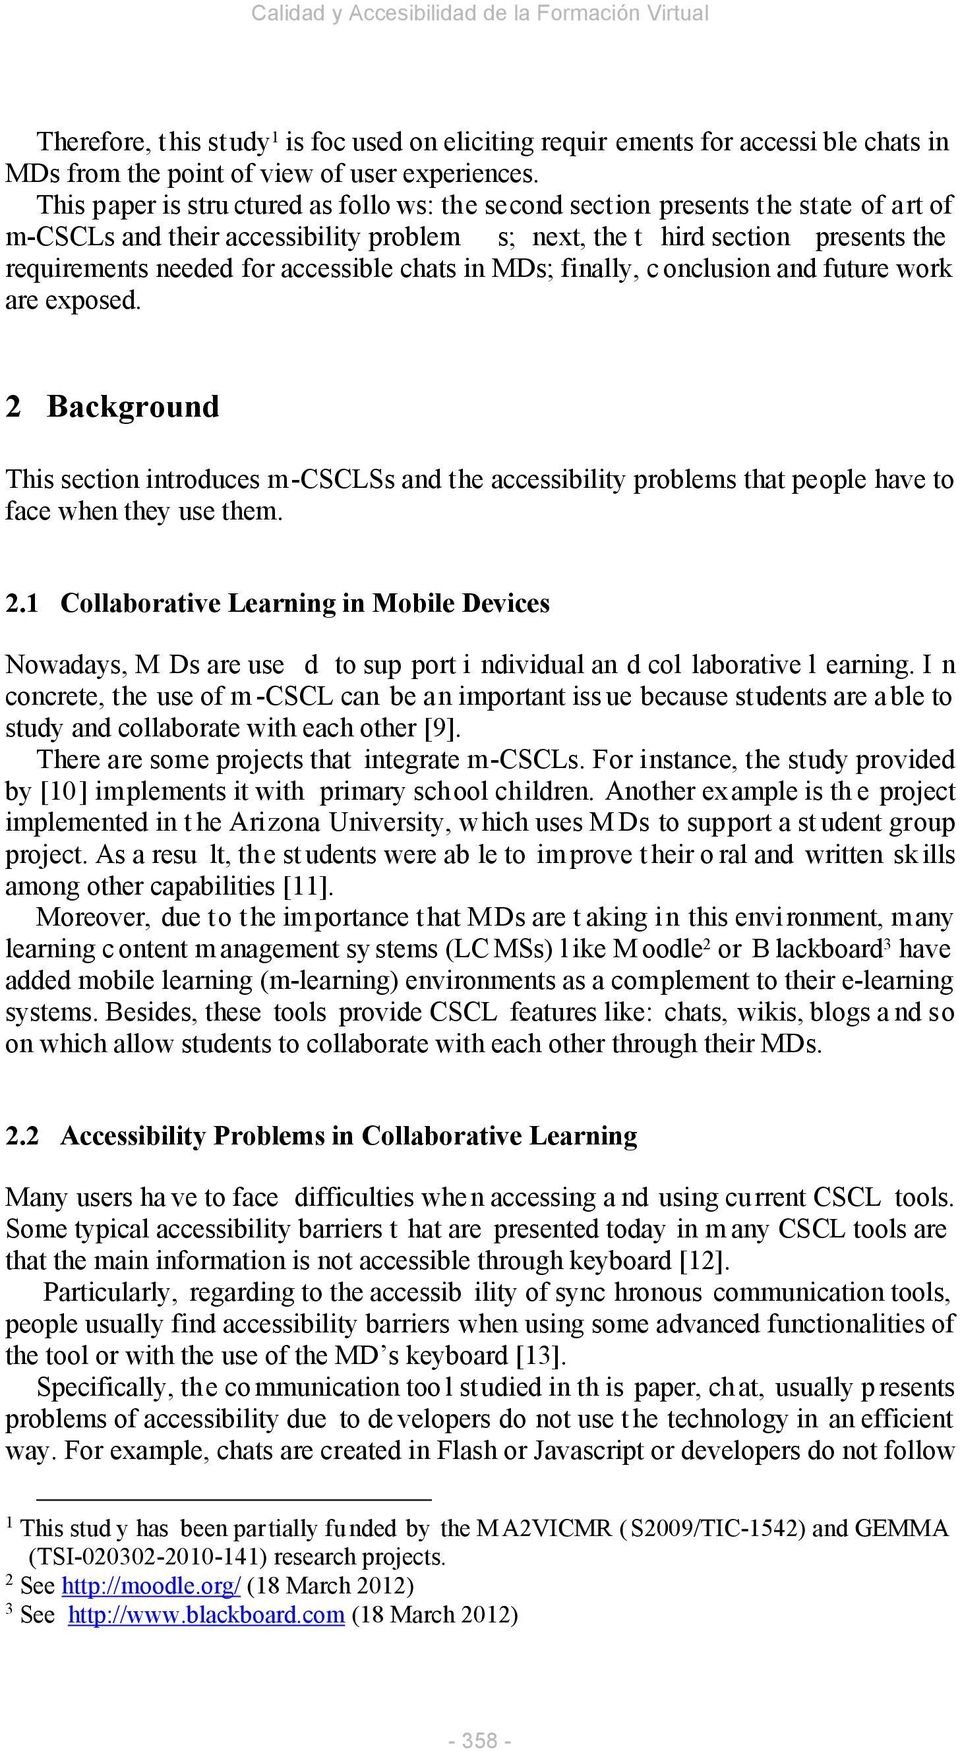 accessible chats in MDs; finally, c onclusion and future work are exposed. 2 Background This section introduces m-csclss and the accessibility problems that people have to face when they use them. 2.1 Collaborative Learning in Mobile Devices Nowadays, M Ds are use d to sup port i ndividual an d col laborative l earning.